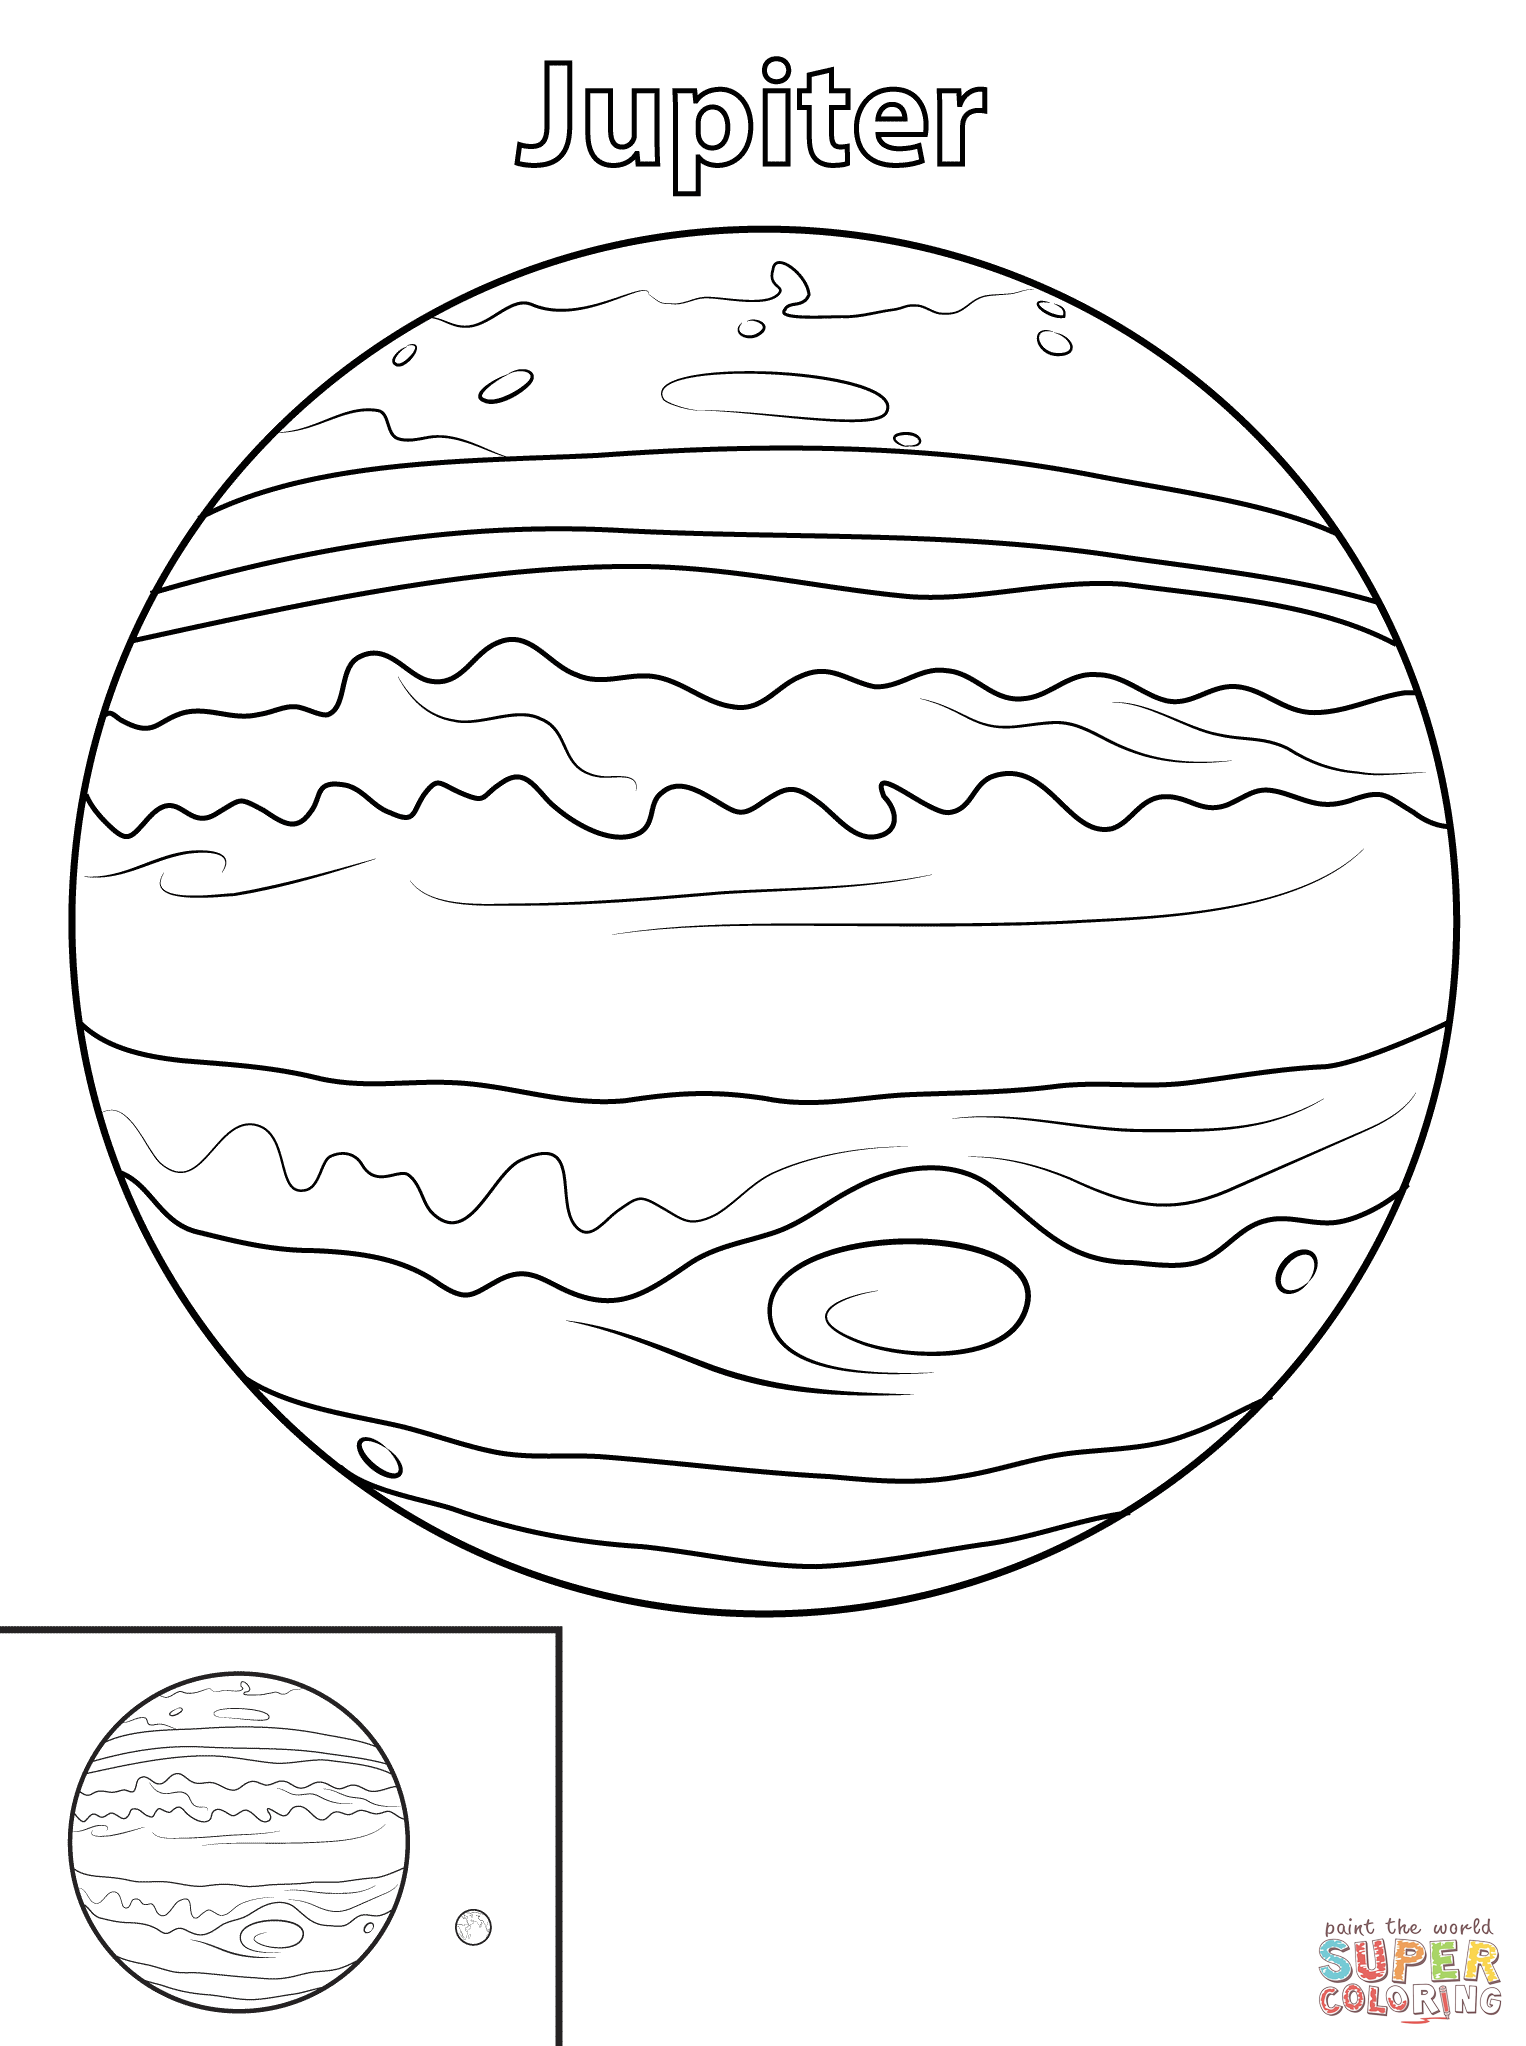 1526x2046 Jupiter Planet Coloring Page Free Printable Coloring Pages